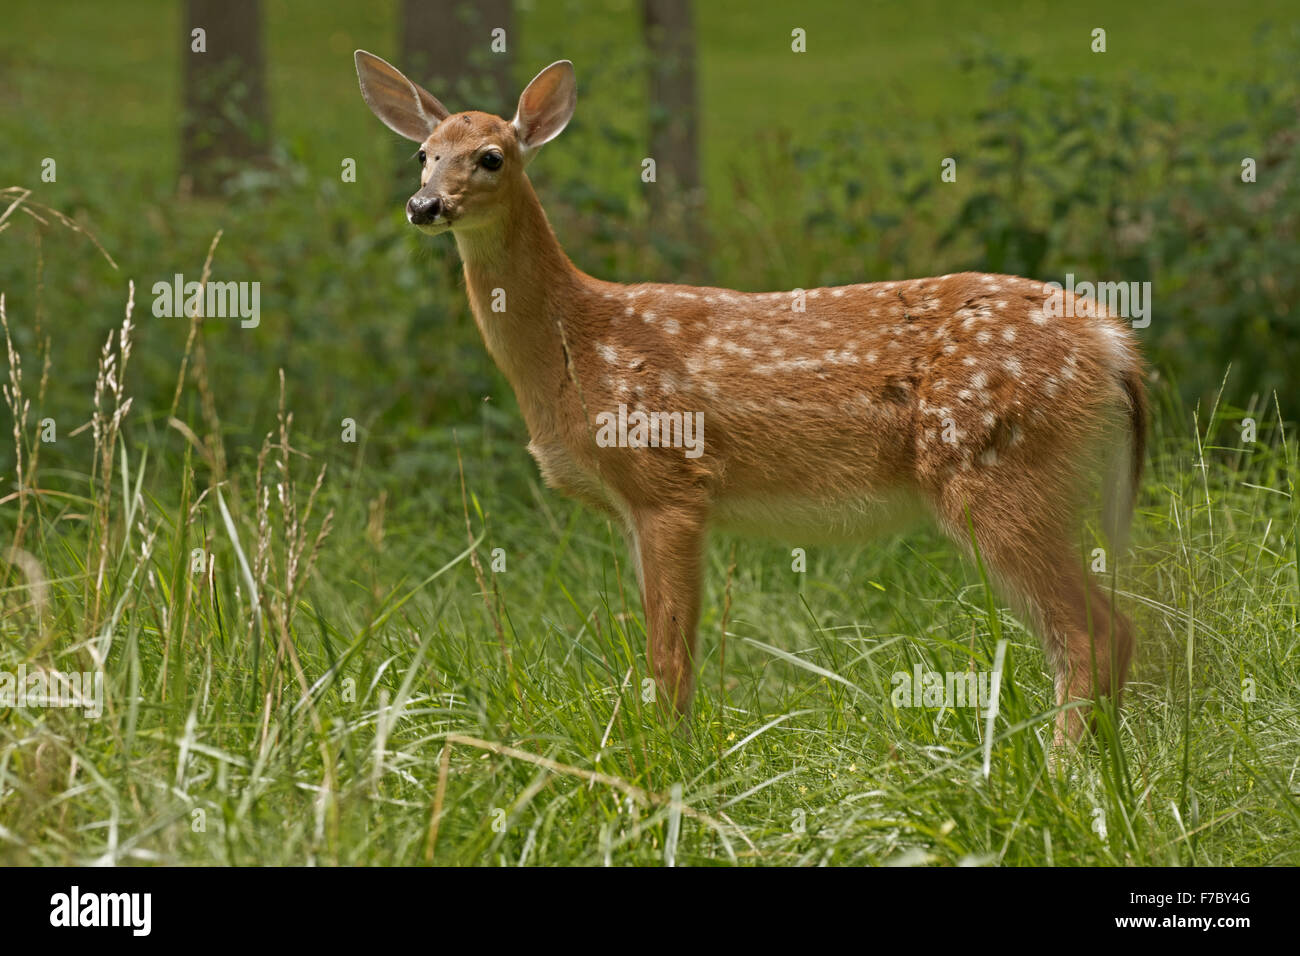 White-tailed deer, New York, fawn - Stock Image